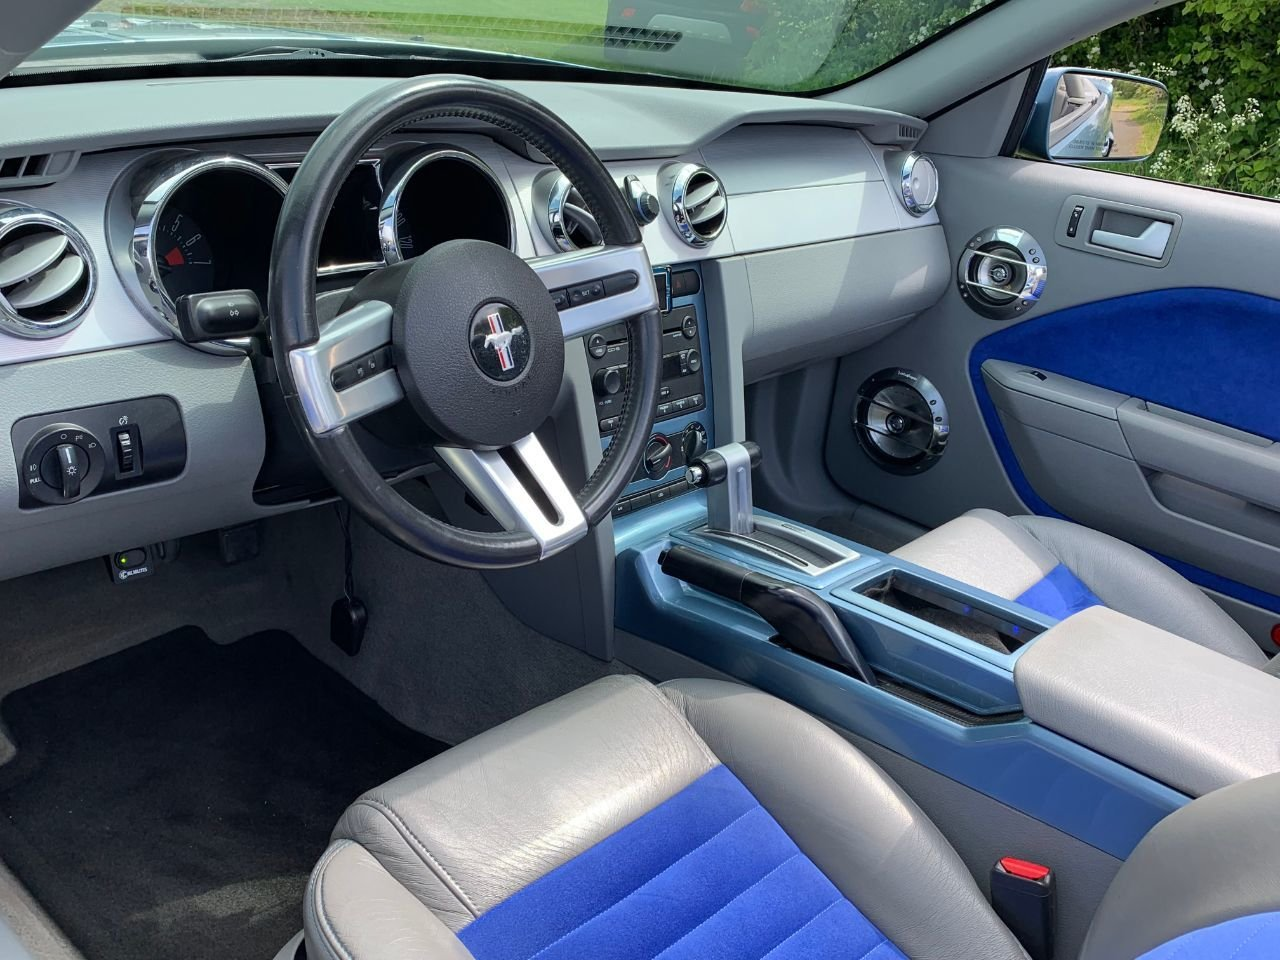 2008 Ford Mustang Convertible For Sale (picture 6 of 6)